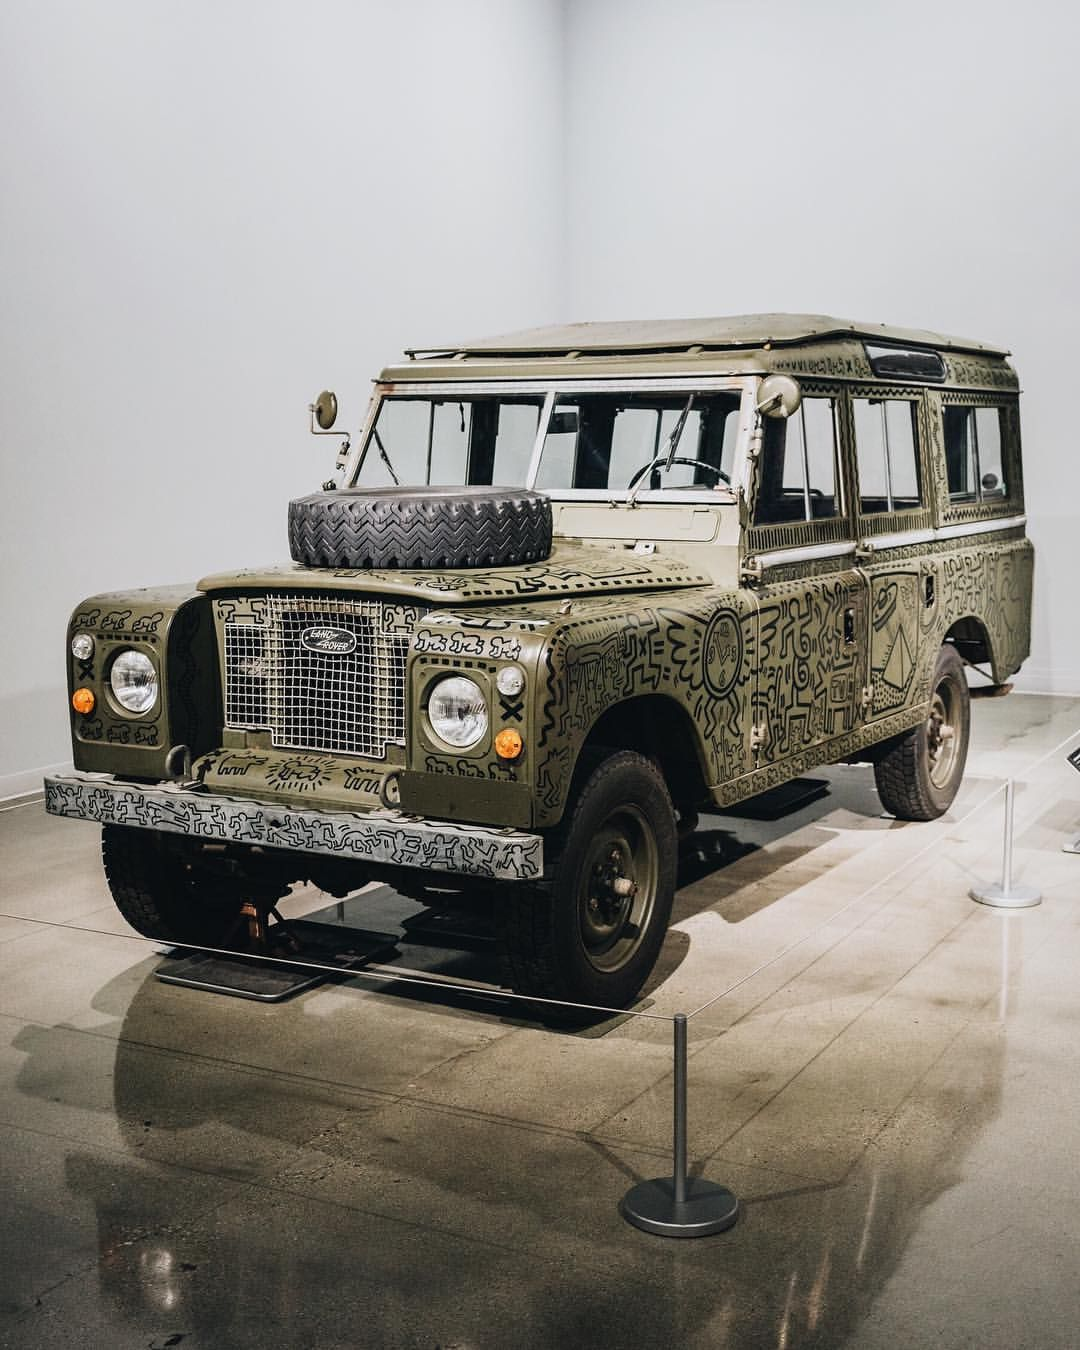 The 1971 Land Rover Series III 109 painted in 1983 by